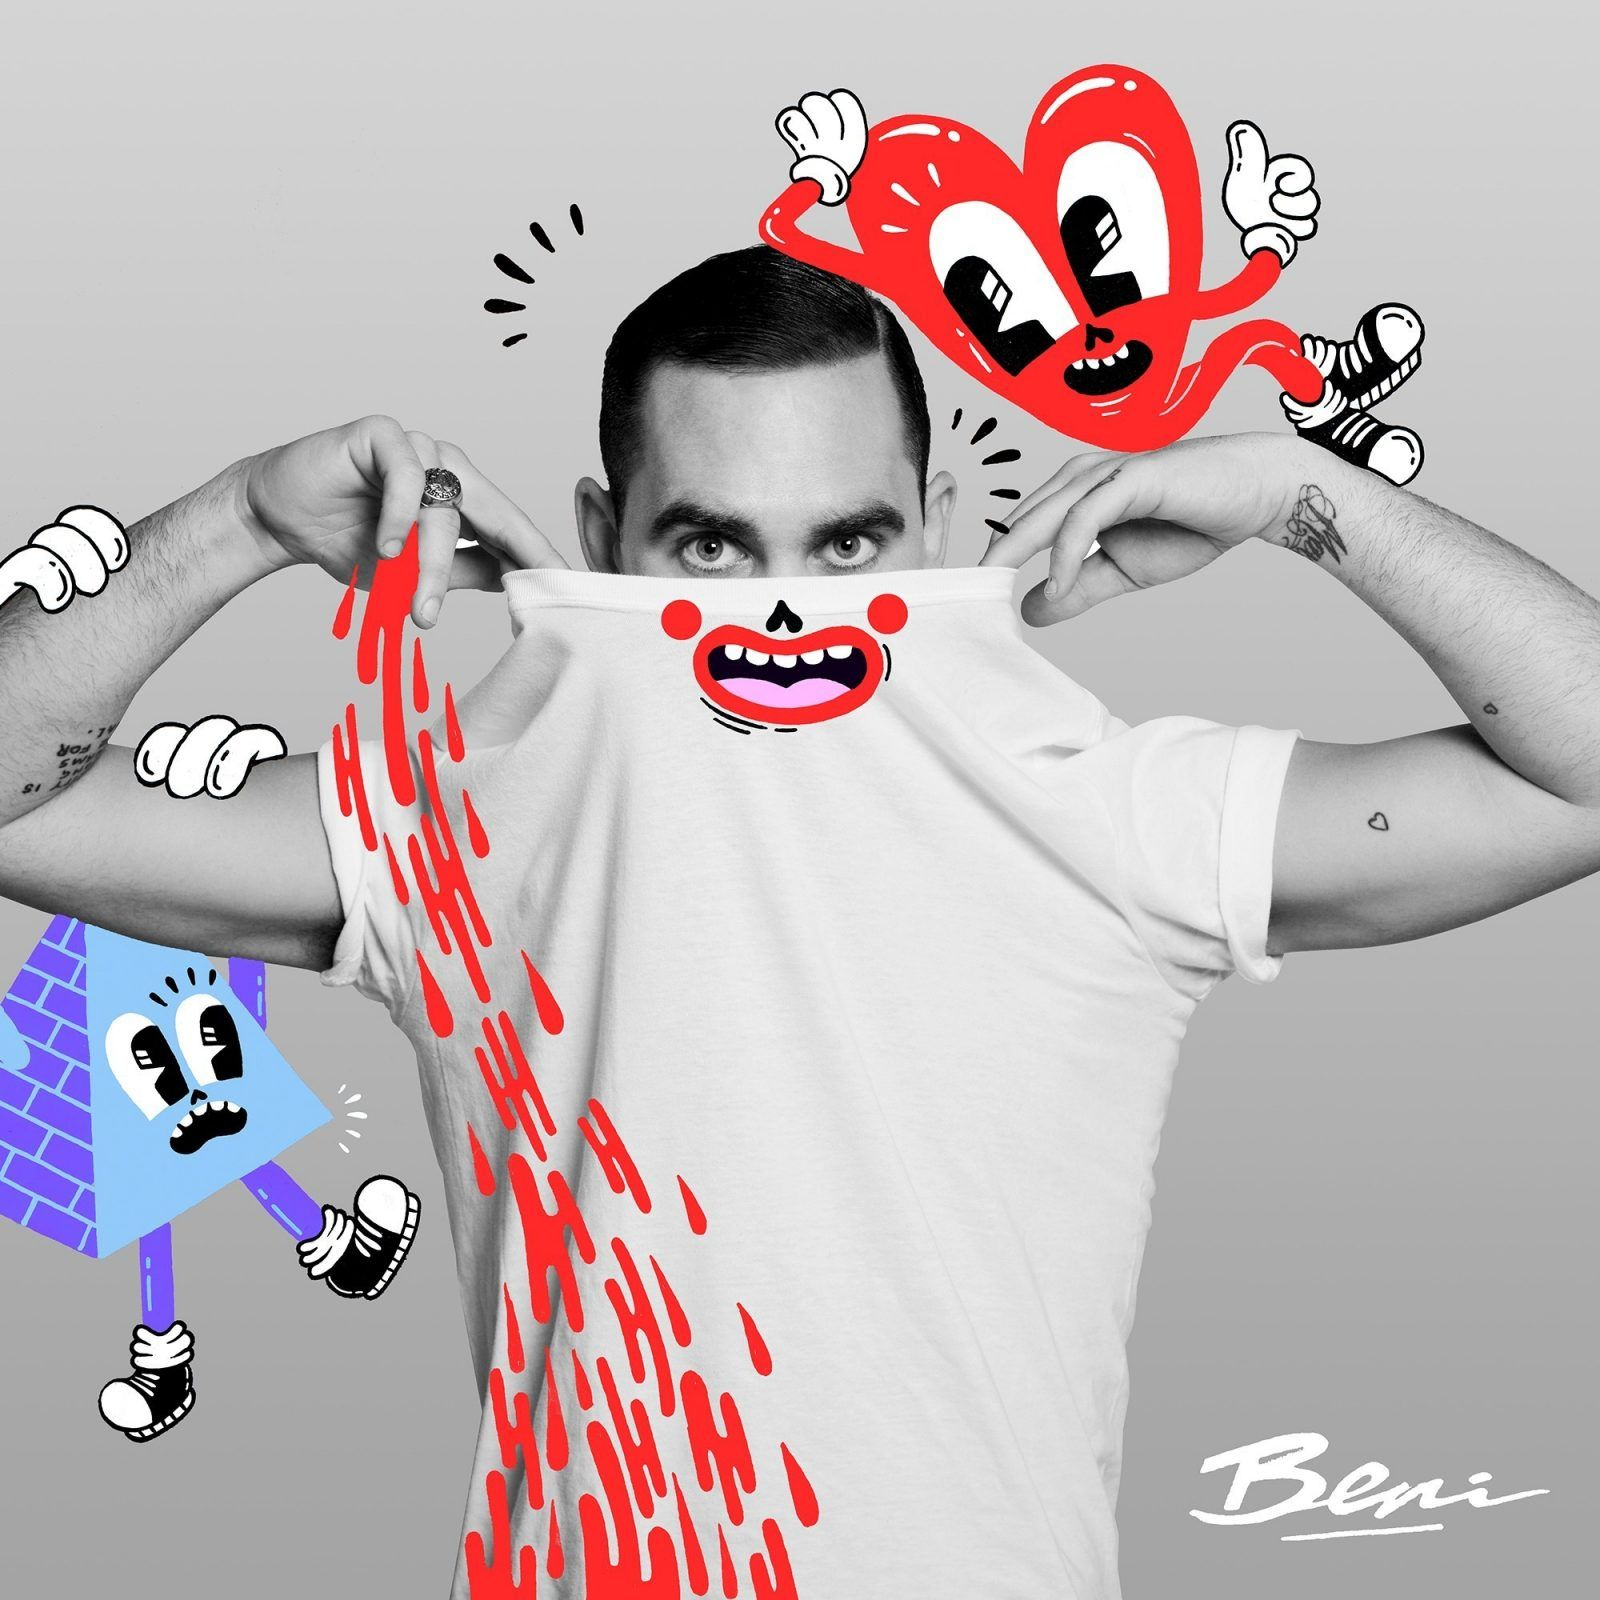 beni-love-run-artwork.jpg